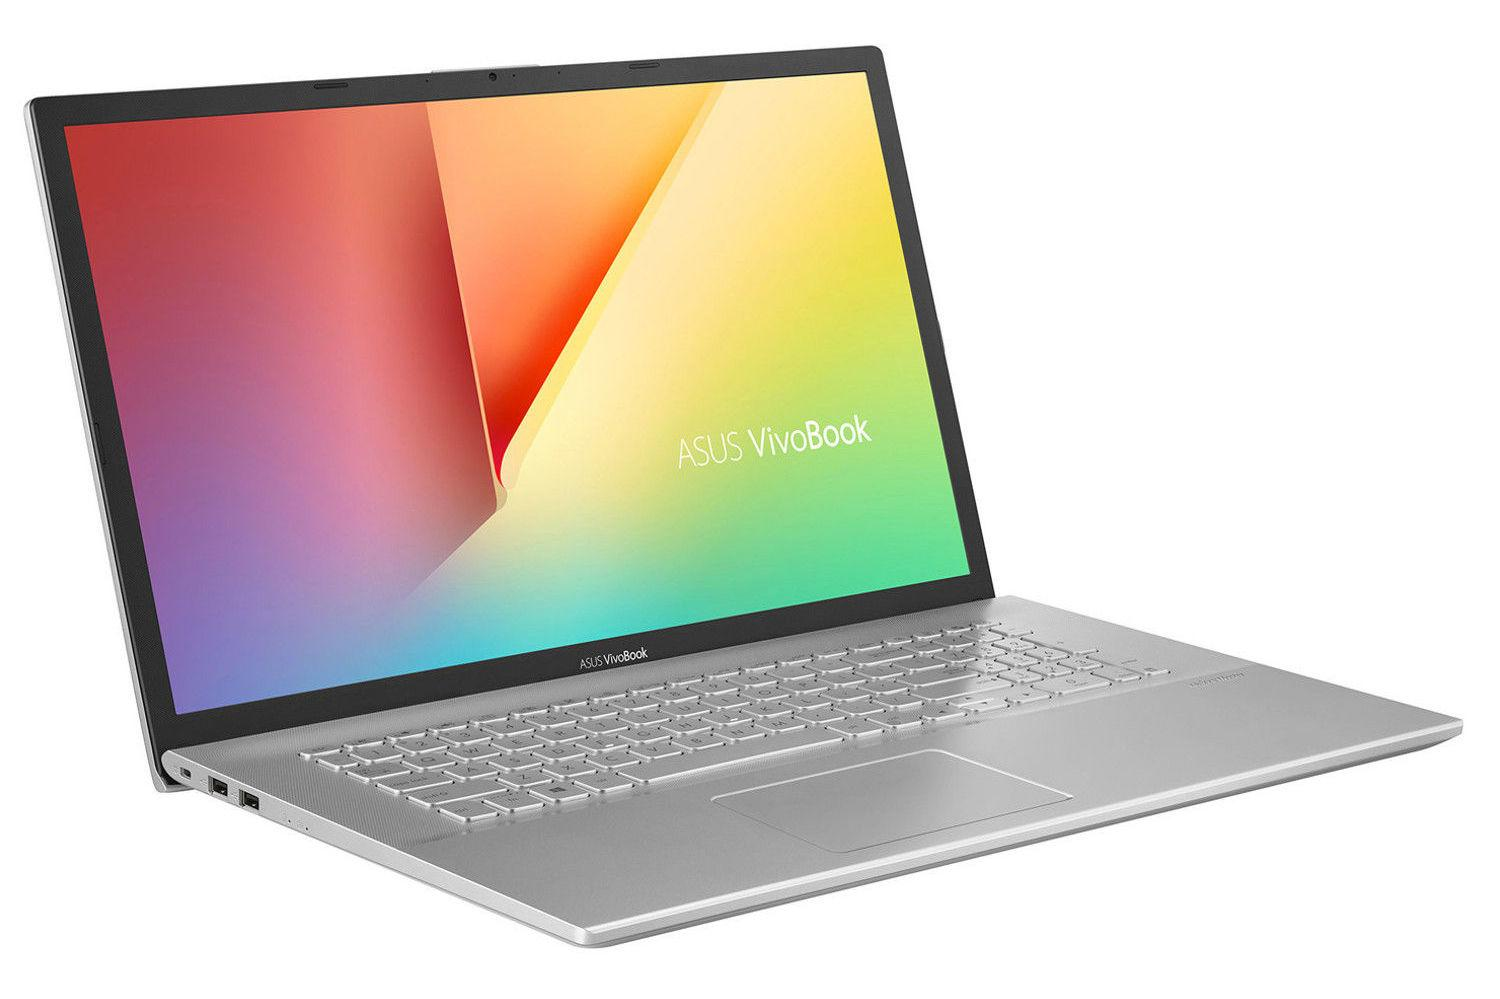 Ordinateur portable Asus VivoBook X712FB-AU121T Argent - SSD, MX110 - photo 1